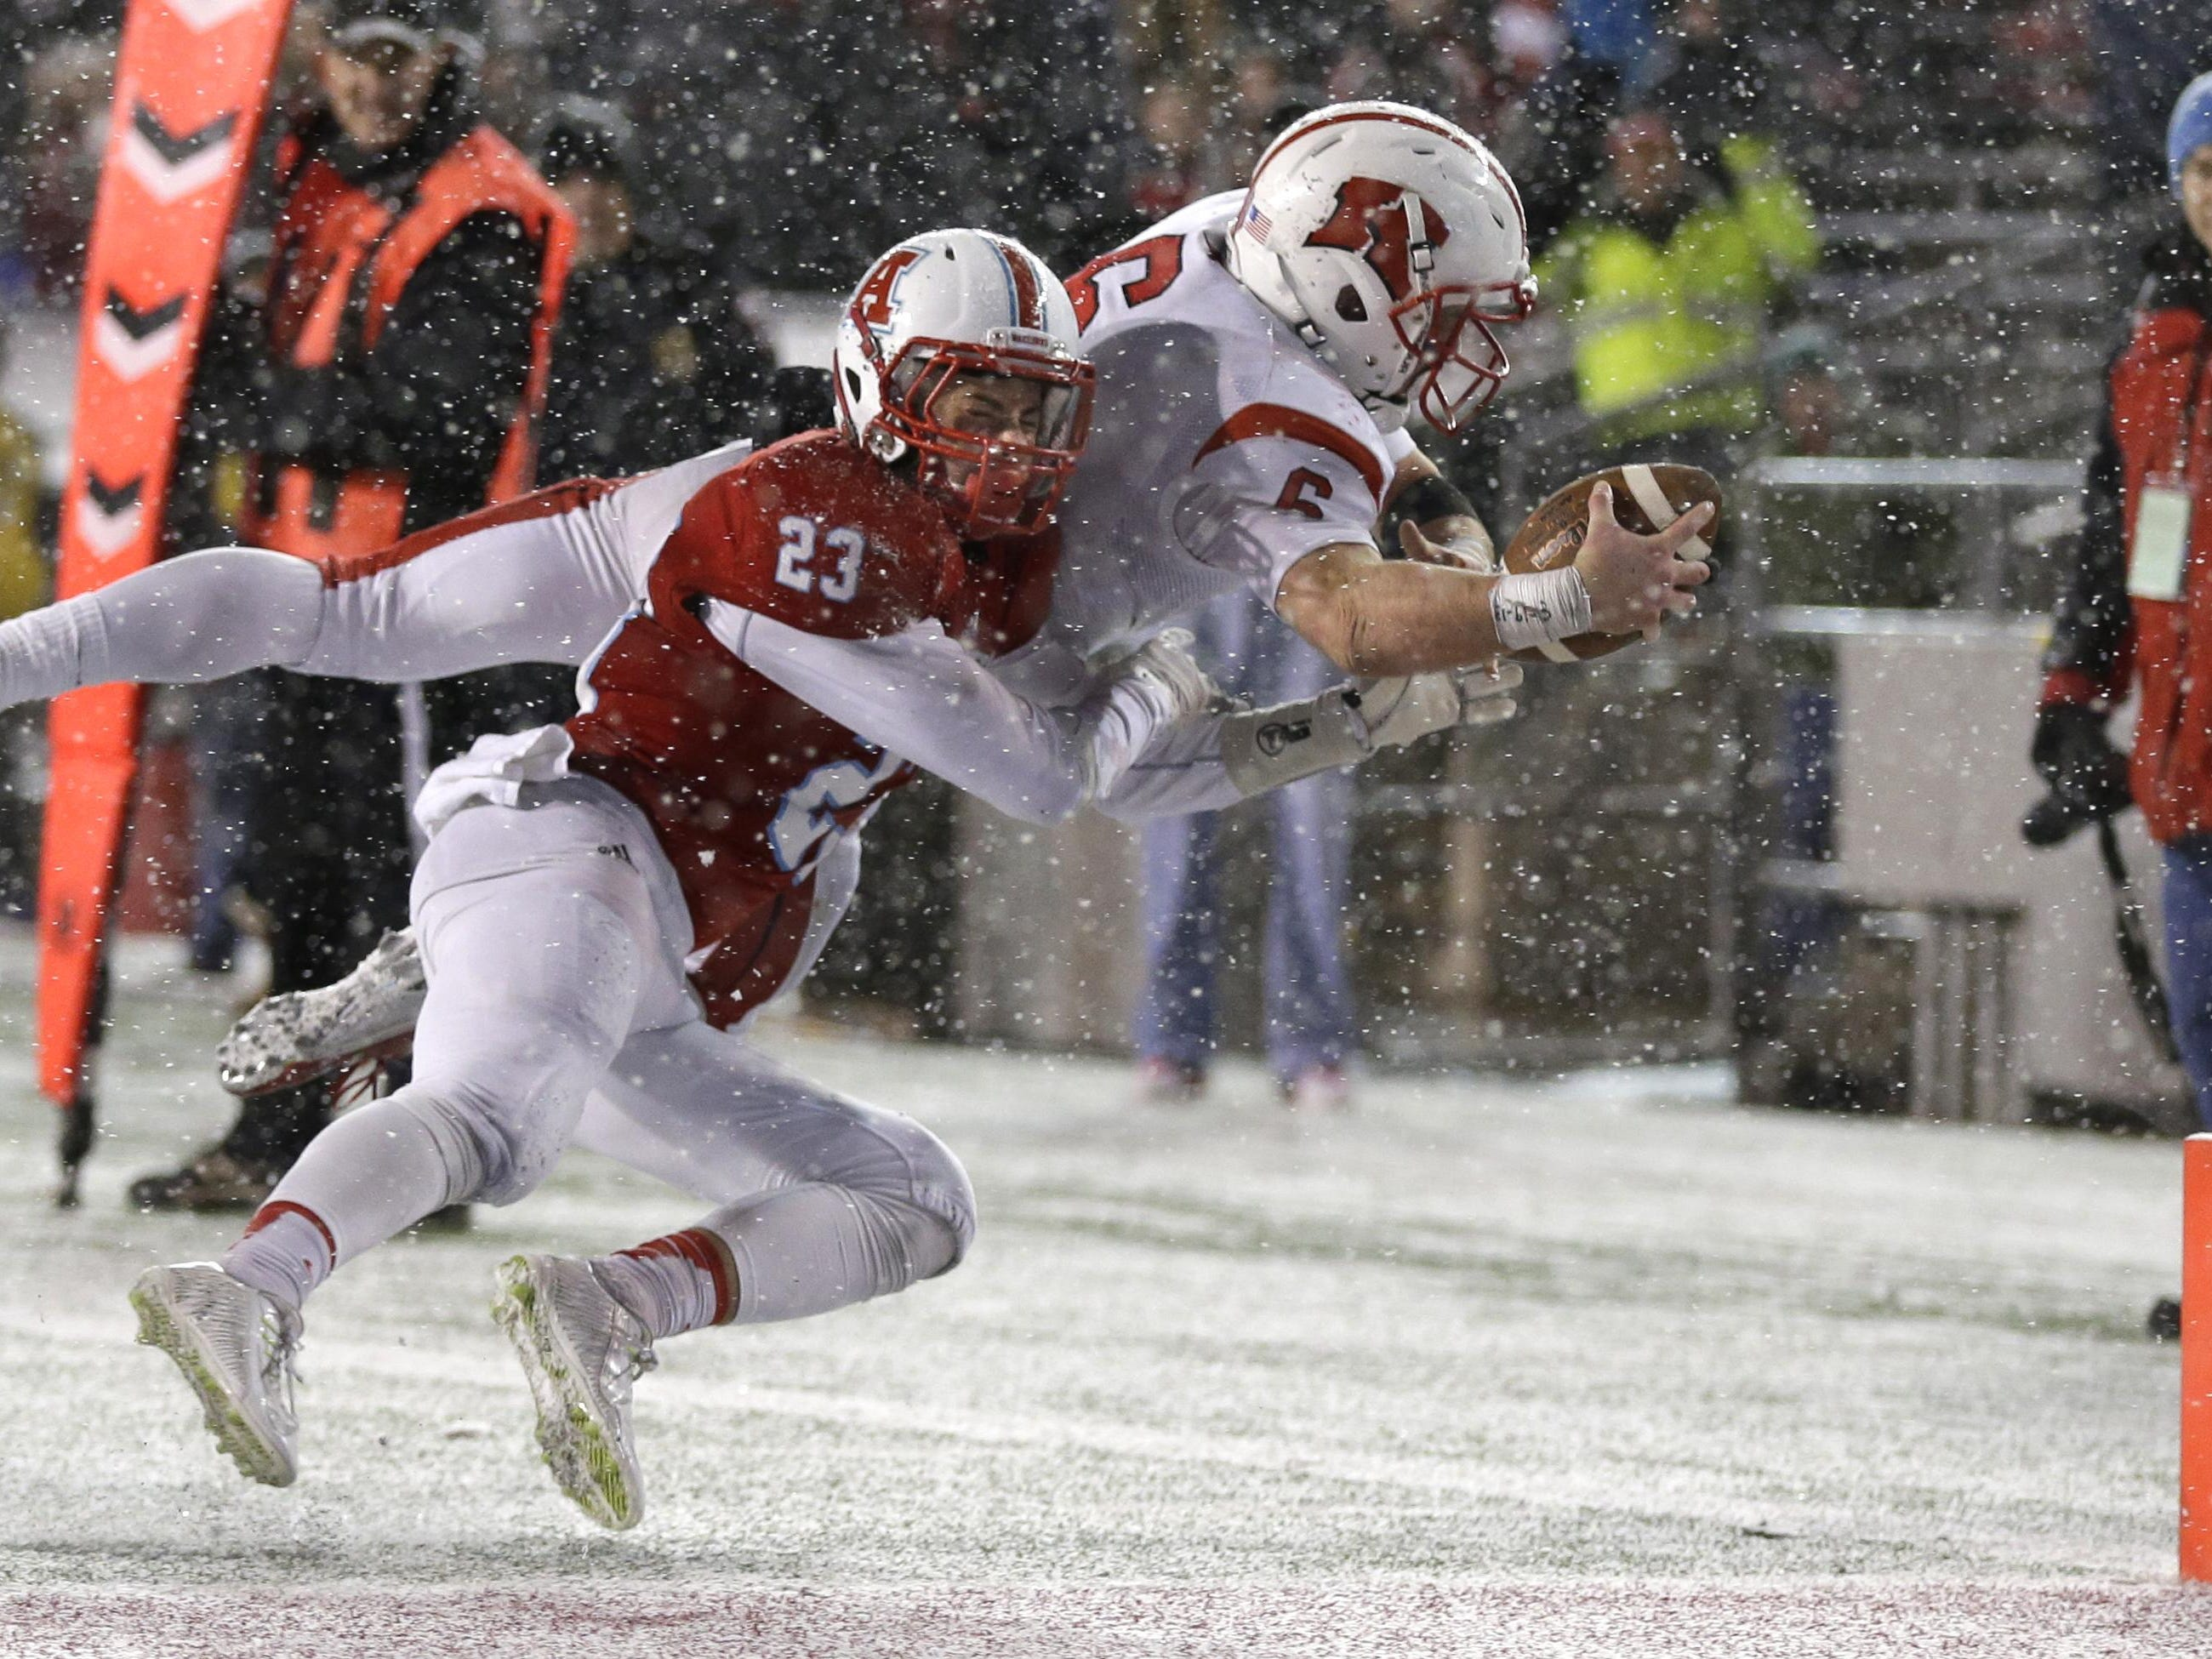 Kimberly's Blair Mulholland is knocked out of bounds just short of a touchdown in the fourth quarter Friday in Madison.